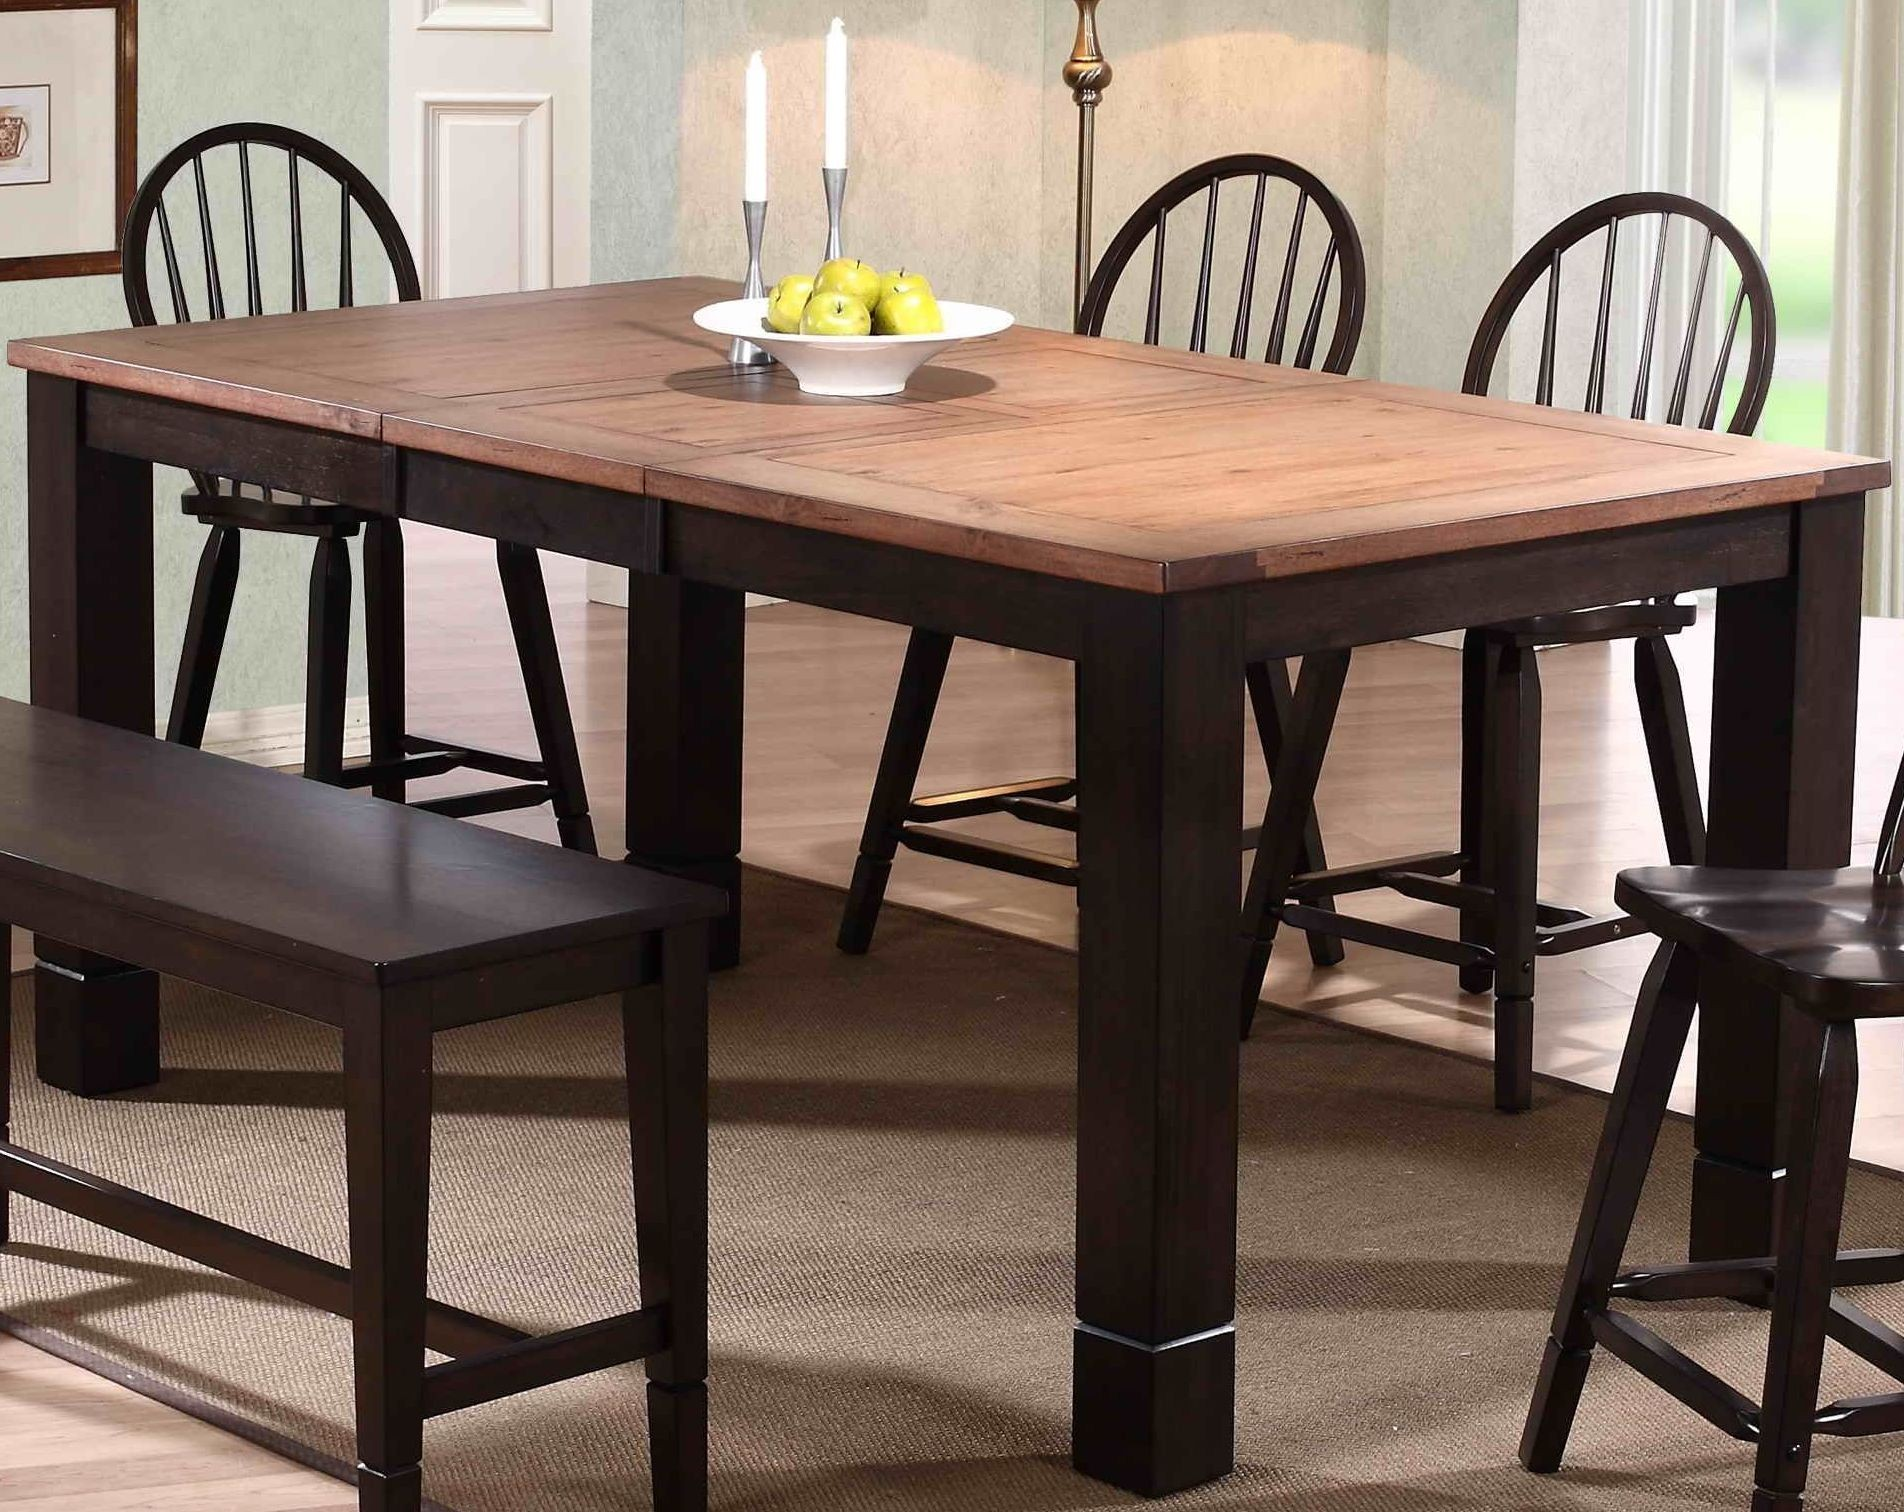 acacia distressed walnut dining table 3073 00 t eci furniture. Black Bedroom Furniture Sets. Home Design Ideas